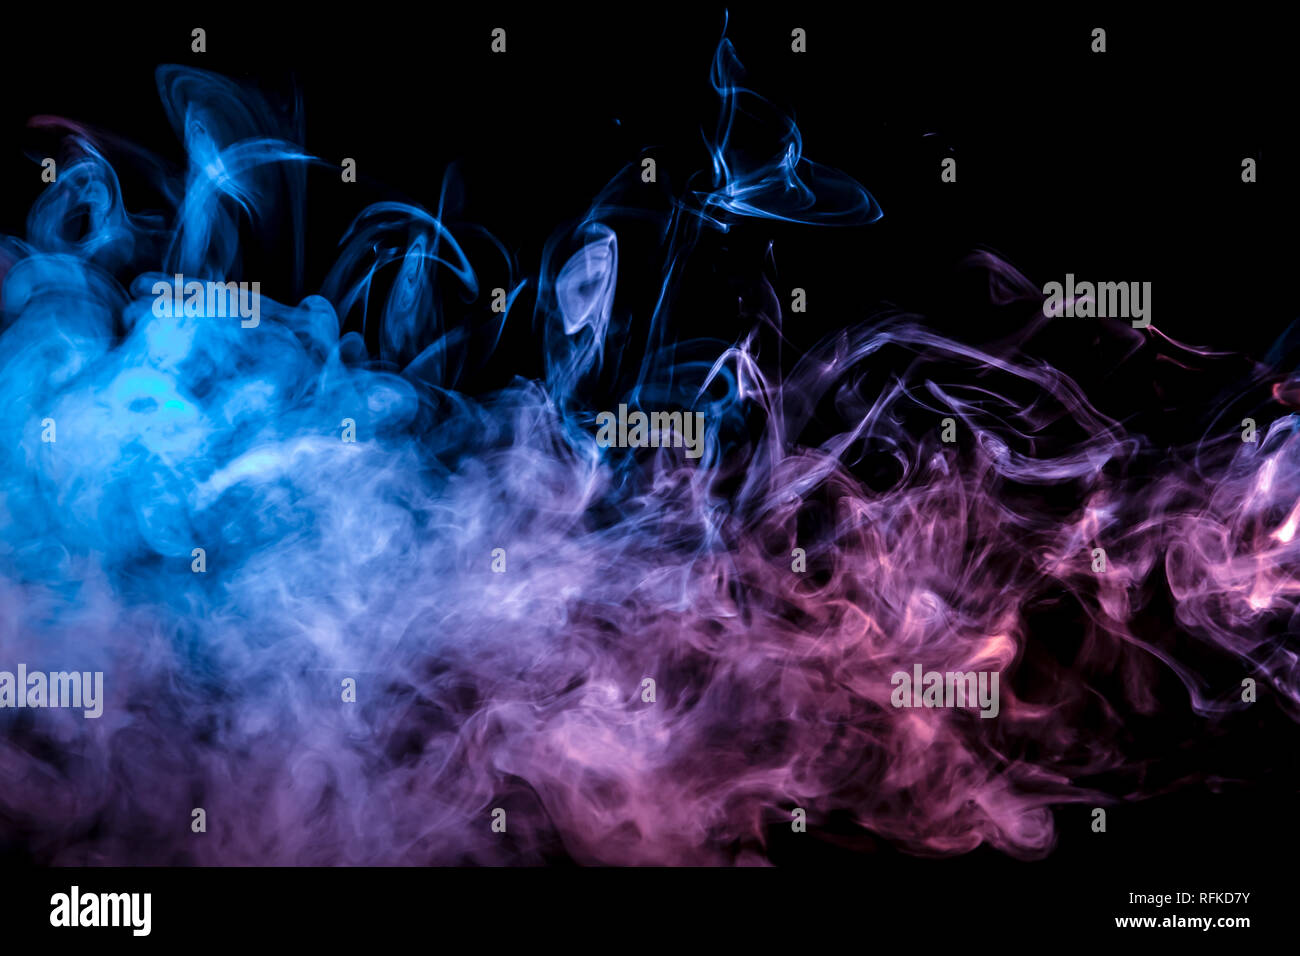 Thin smoothly curling streams of colored smoke evaporate against a black background illuminated with blue and pink light like tongues of fire. - Stock Image